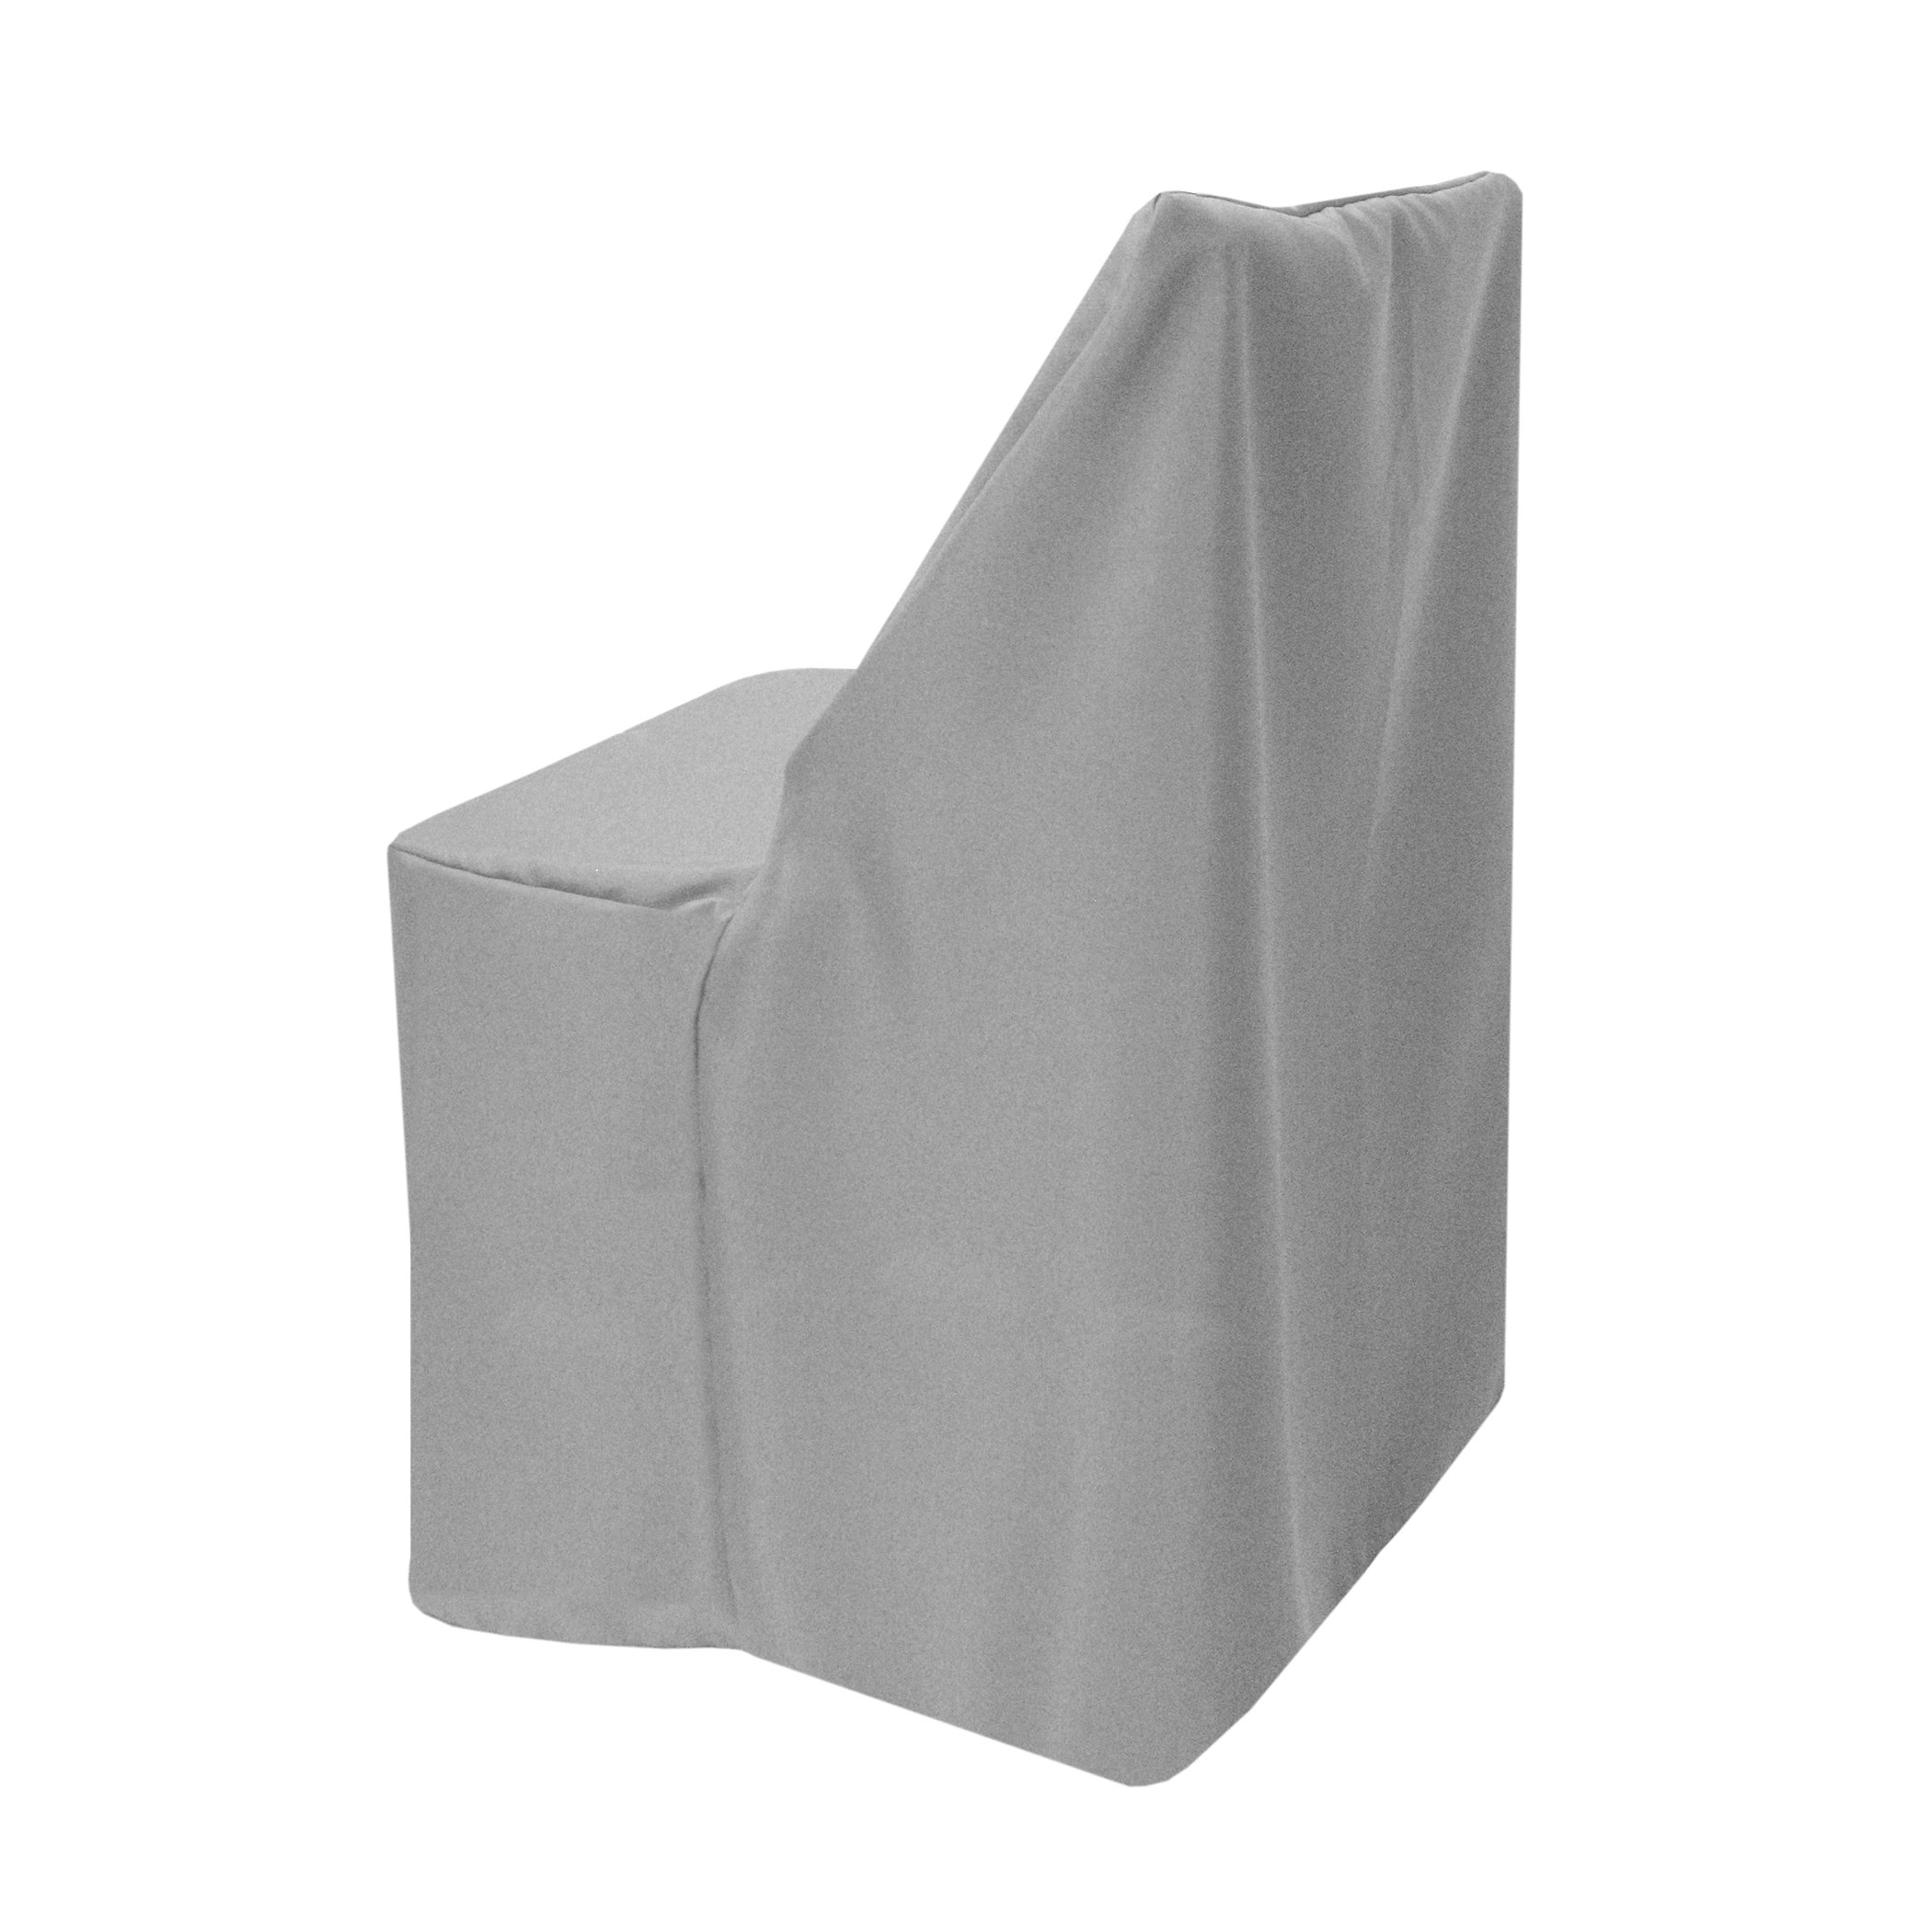 Ultimate Textile (25 Pack) Polyester Folding Chair Cover - for Wood Folding Chairs, Silver by Ultimate Textile